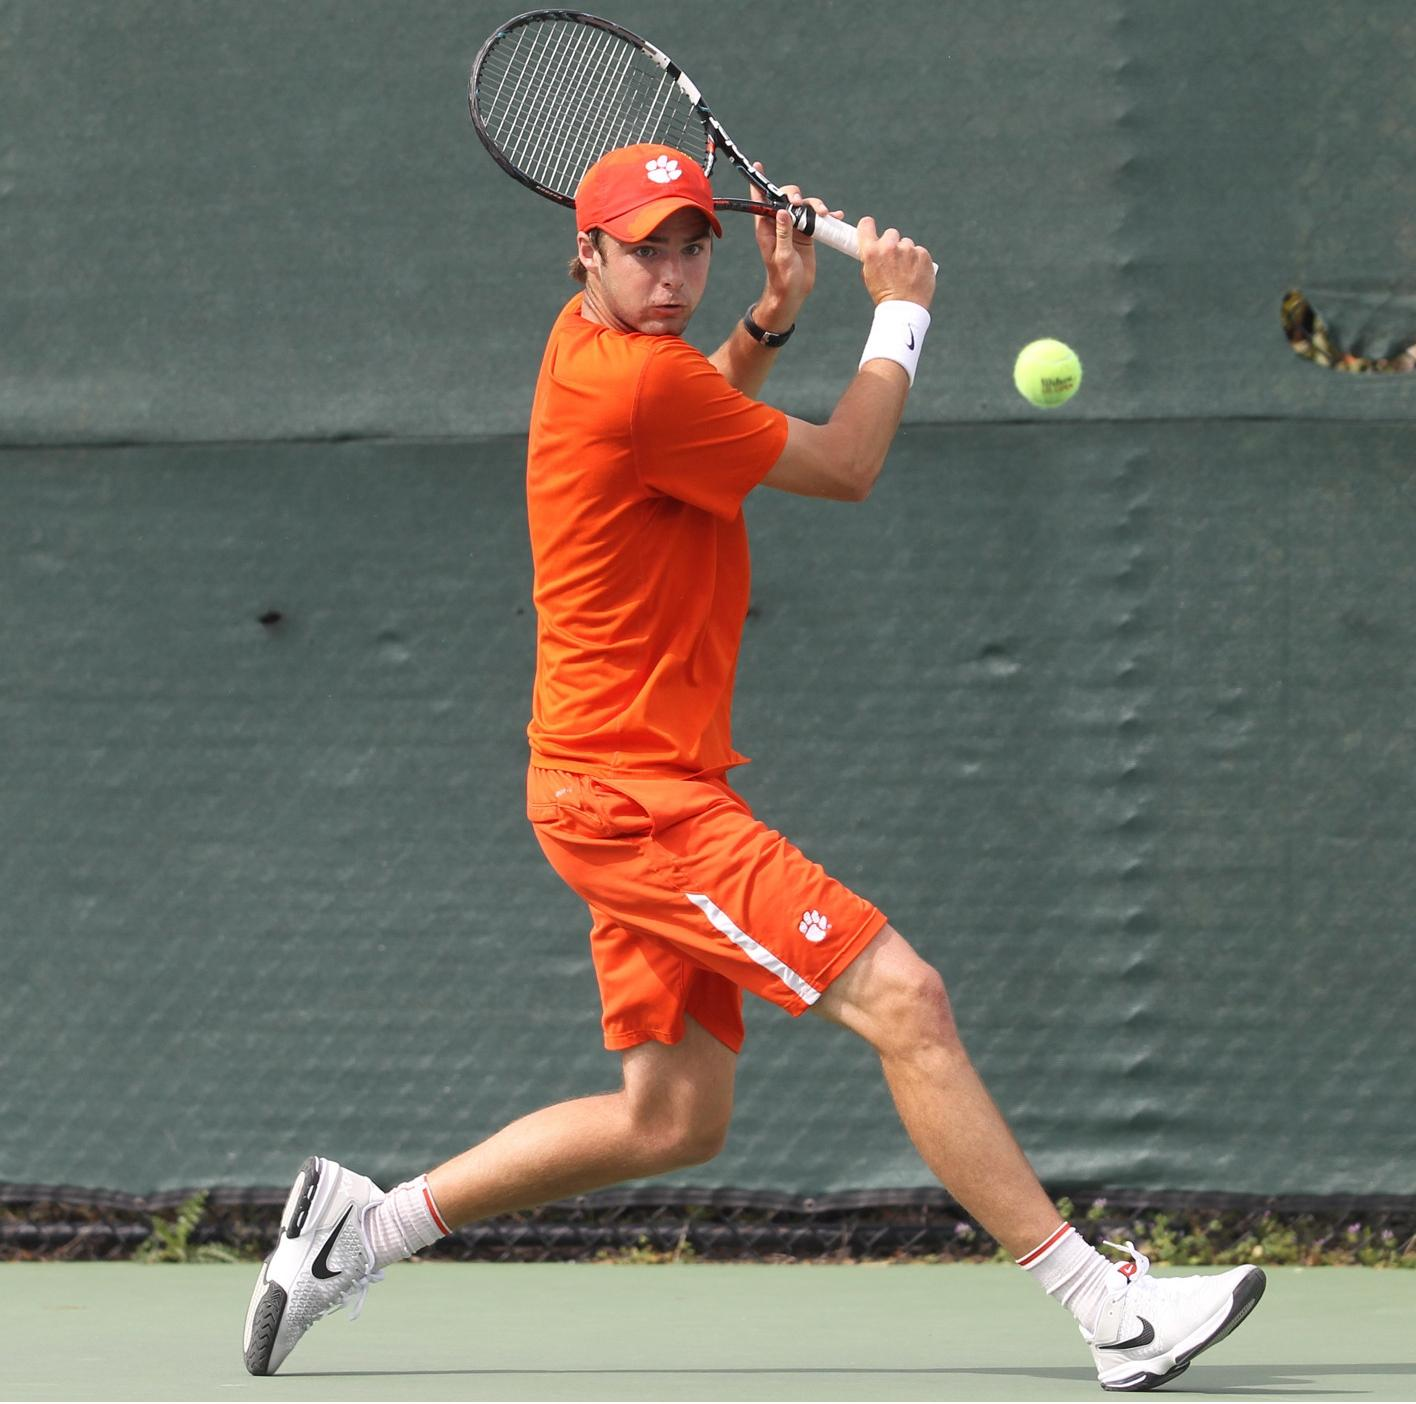 Augusto, Harrington Lead Tigers at ITA Carolina Regionals